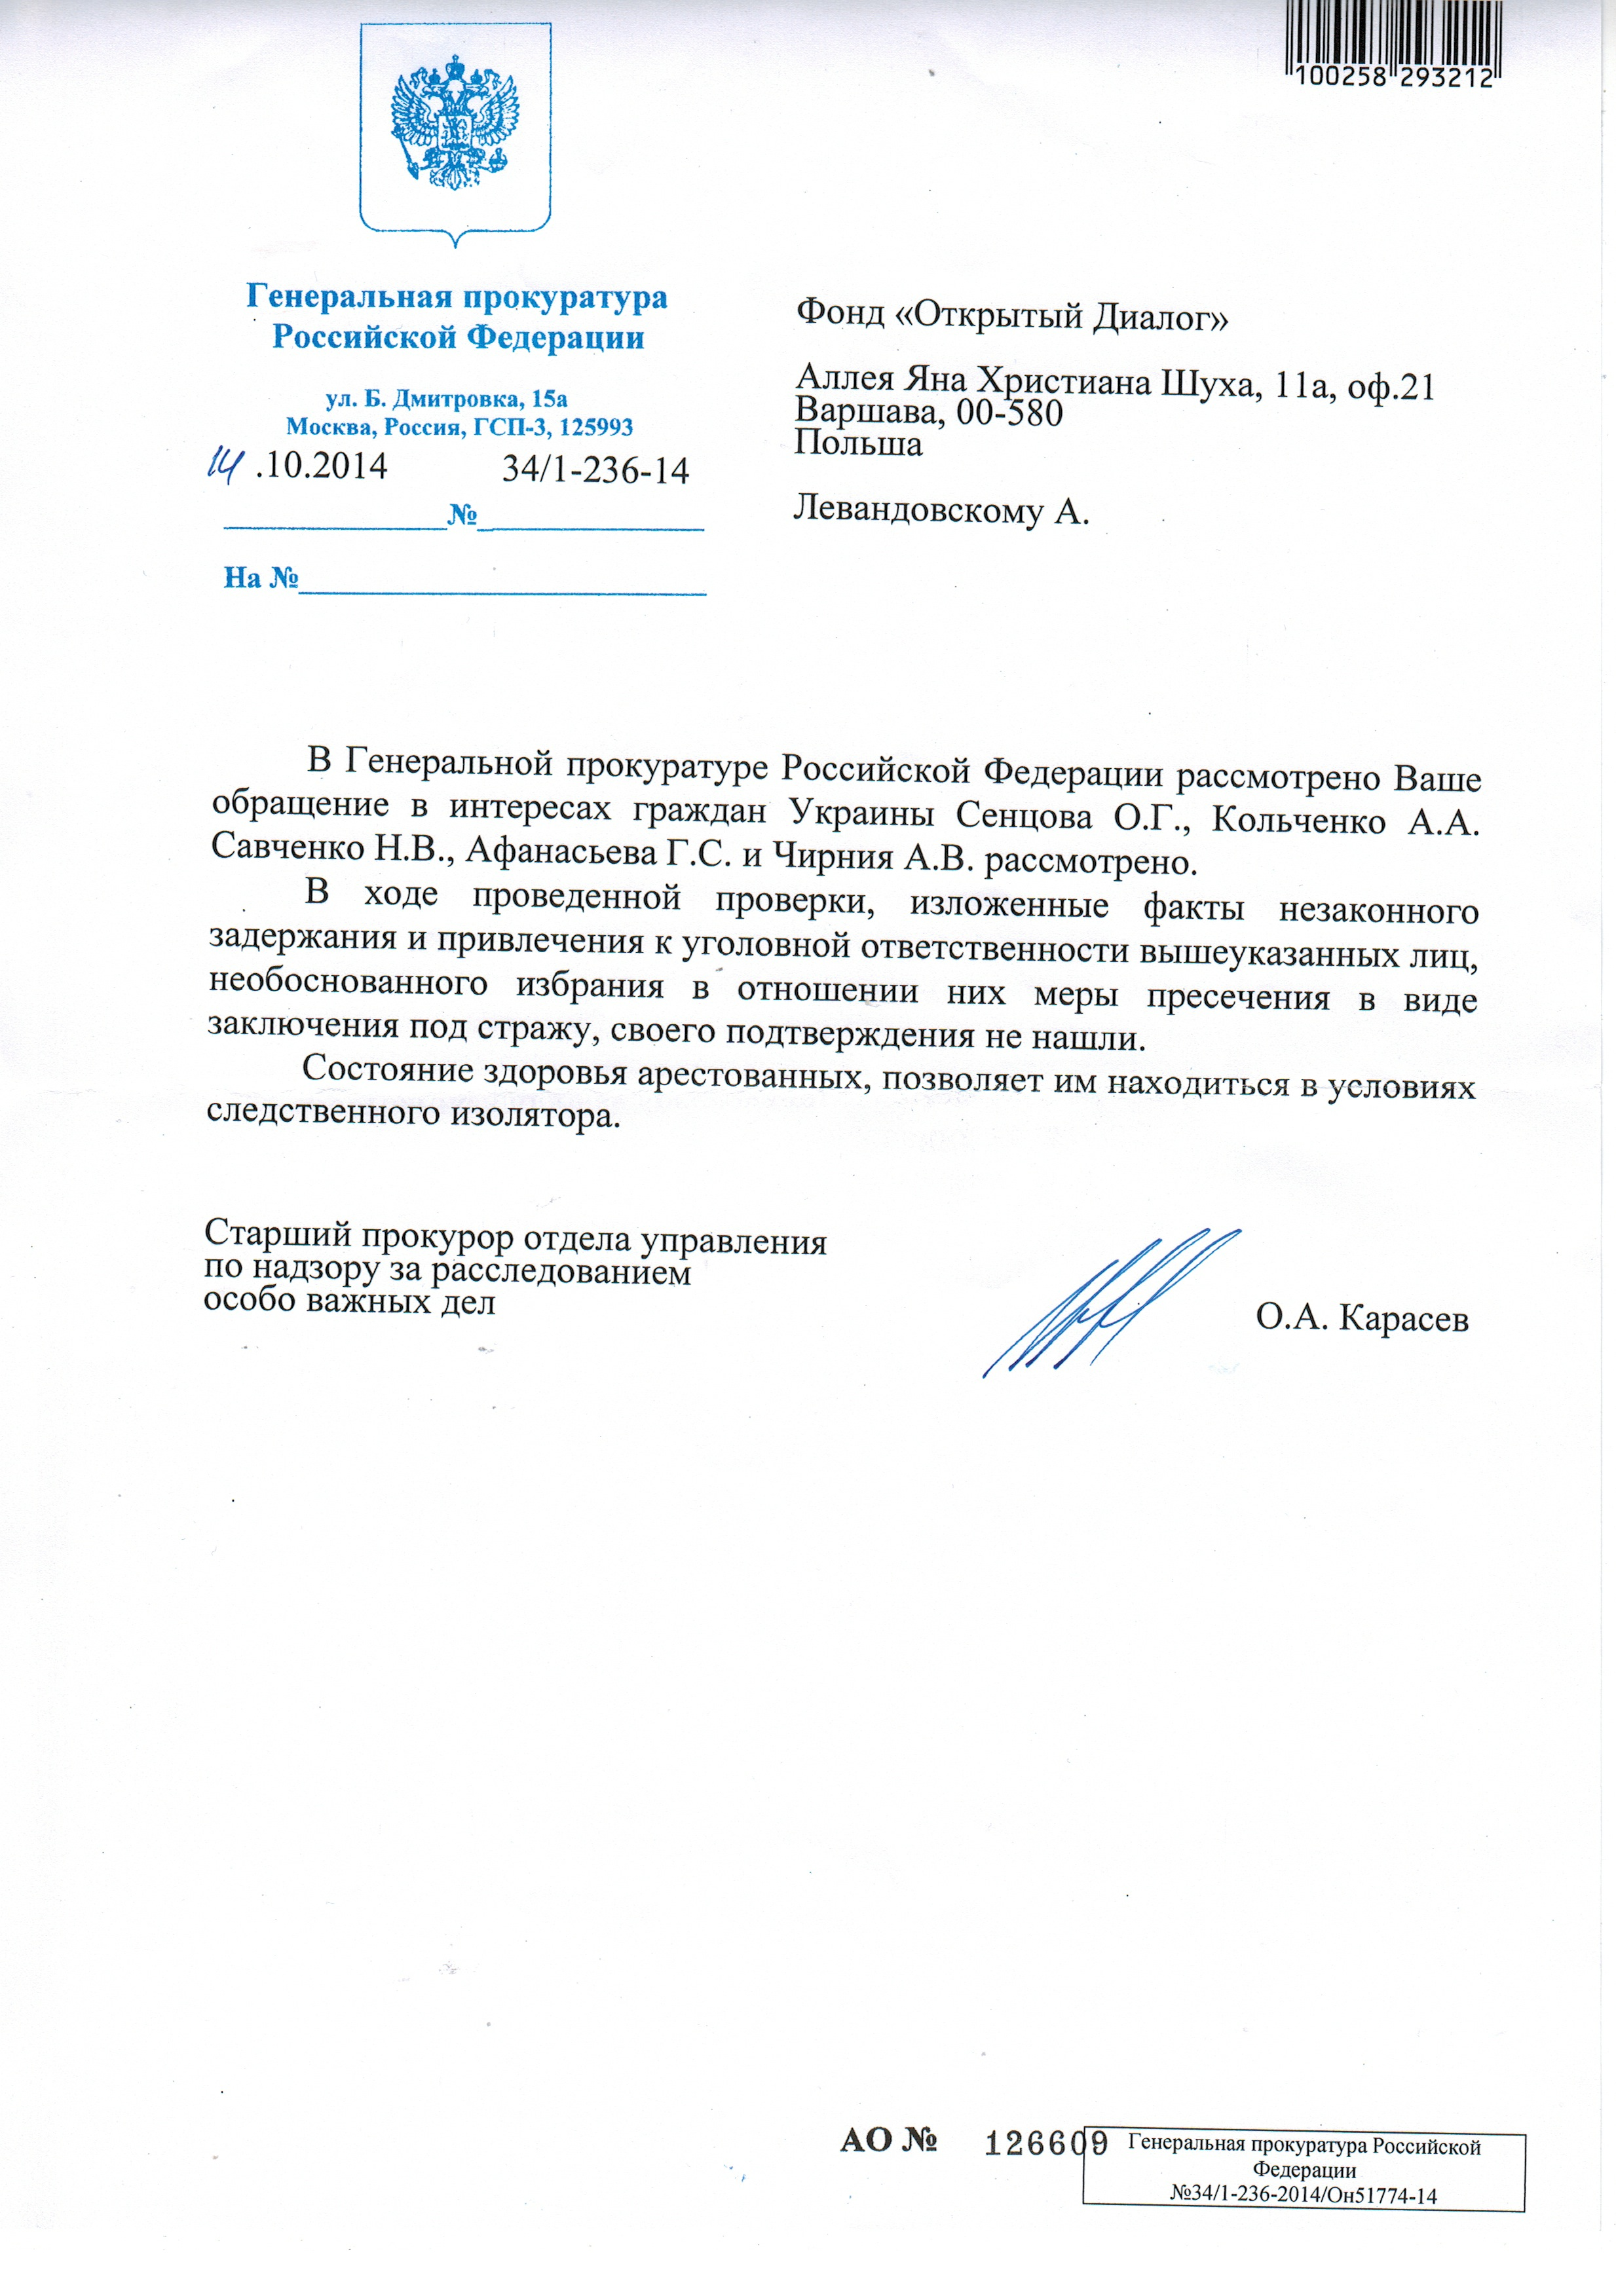 Reply from the Russian authorities addressed to ODF